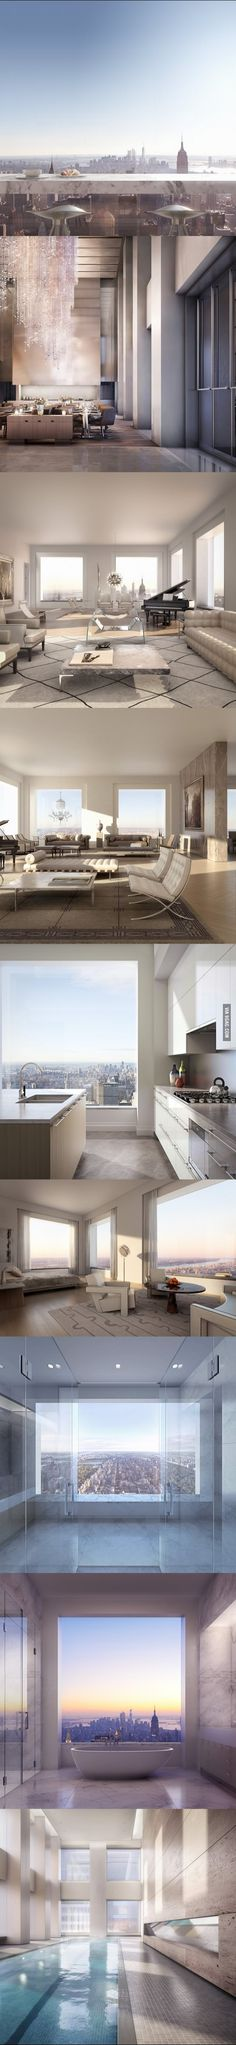 The view from a $95 million apartment